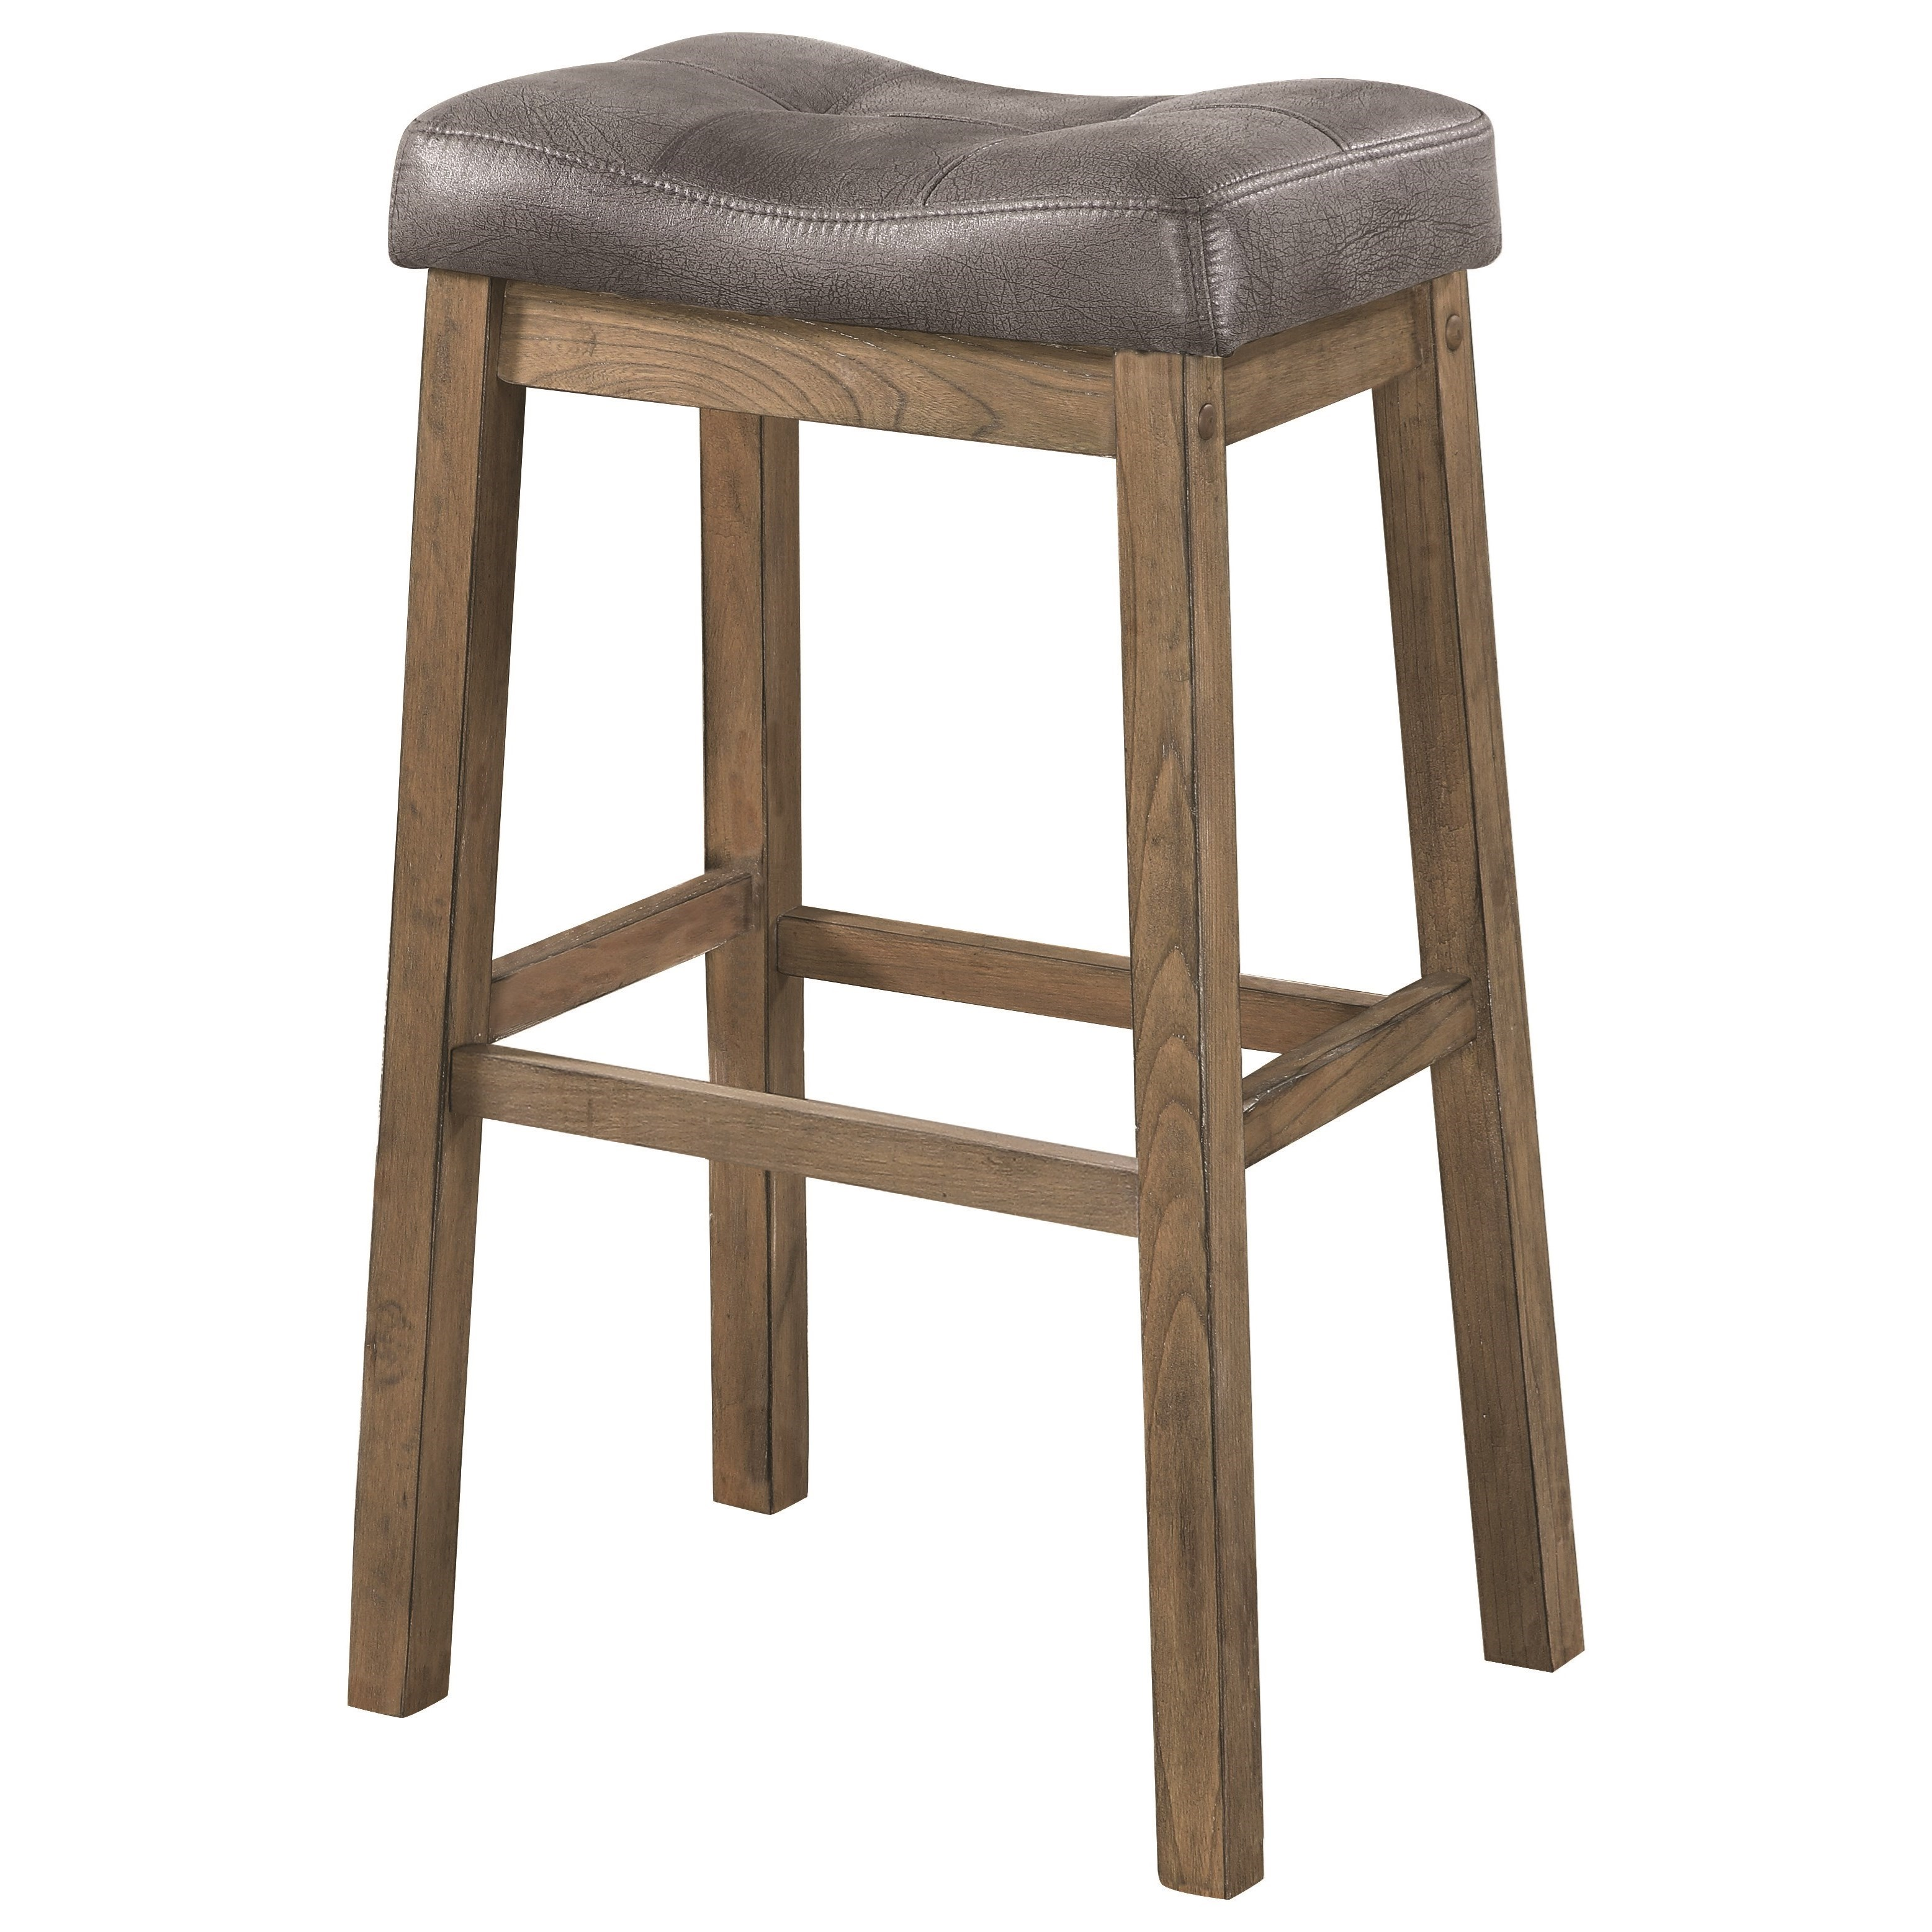 Dining Bar Stools: Fine Furniture Dining Chairs And Bar Stools 121520 Rustic